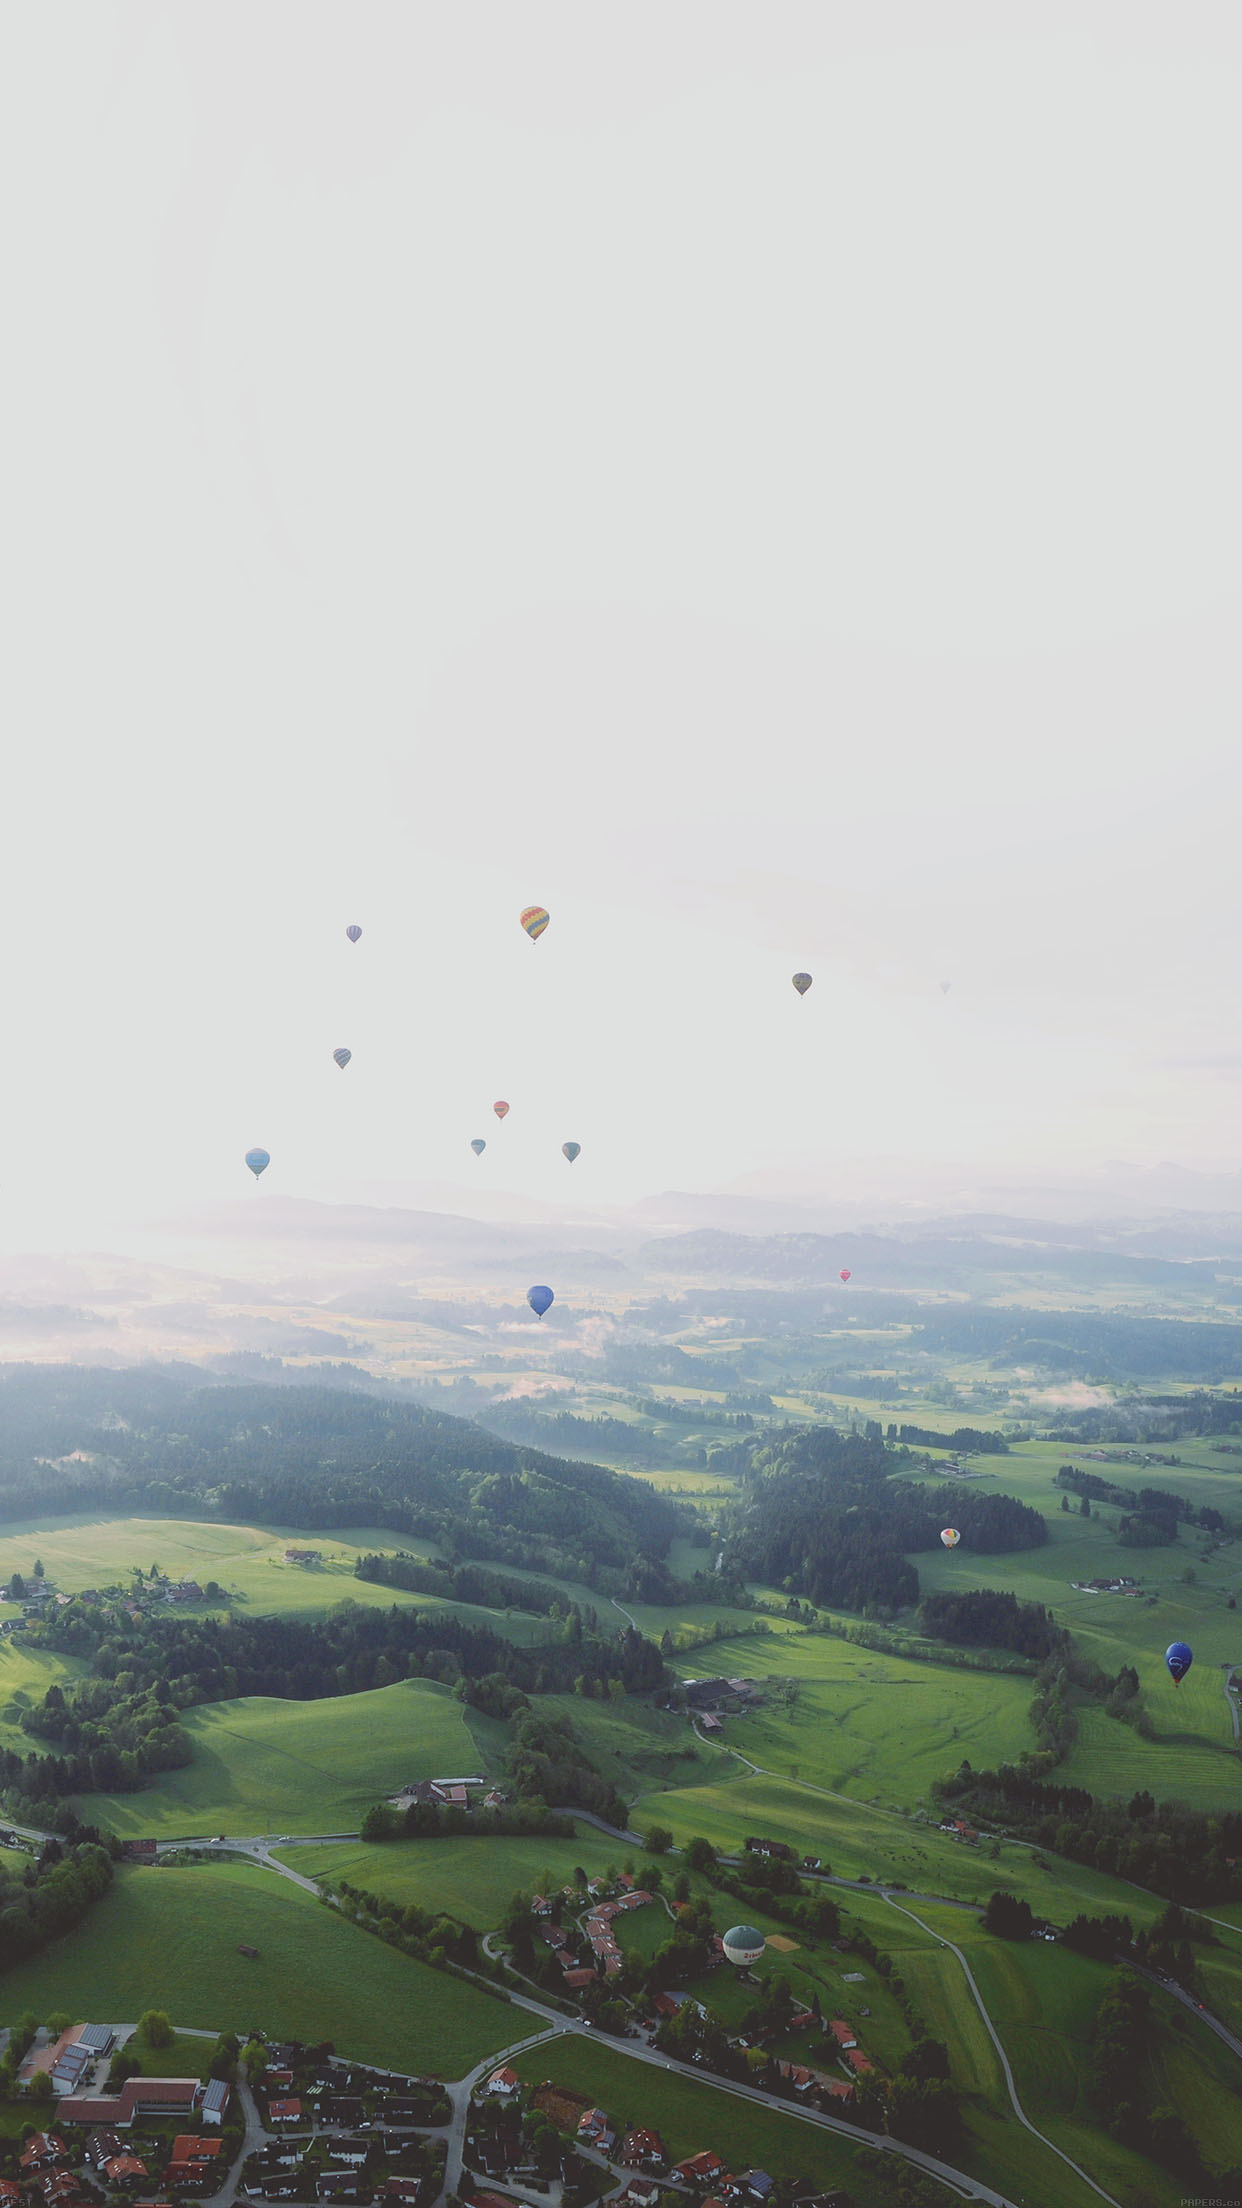 Balloon Party From Air Wide Mountain Nature Android wallpaper